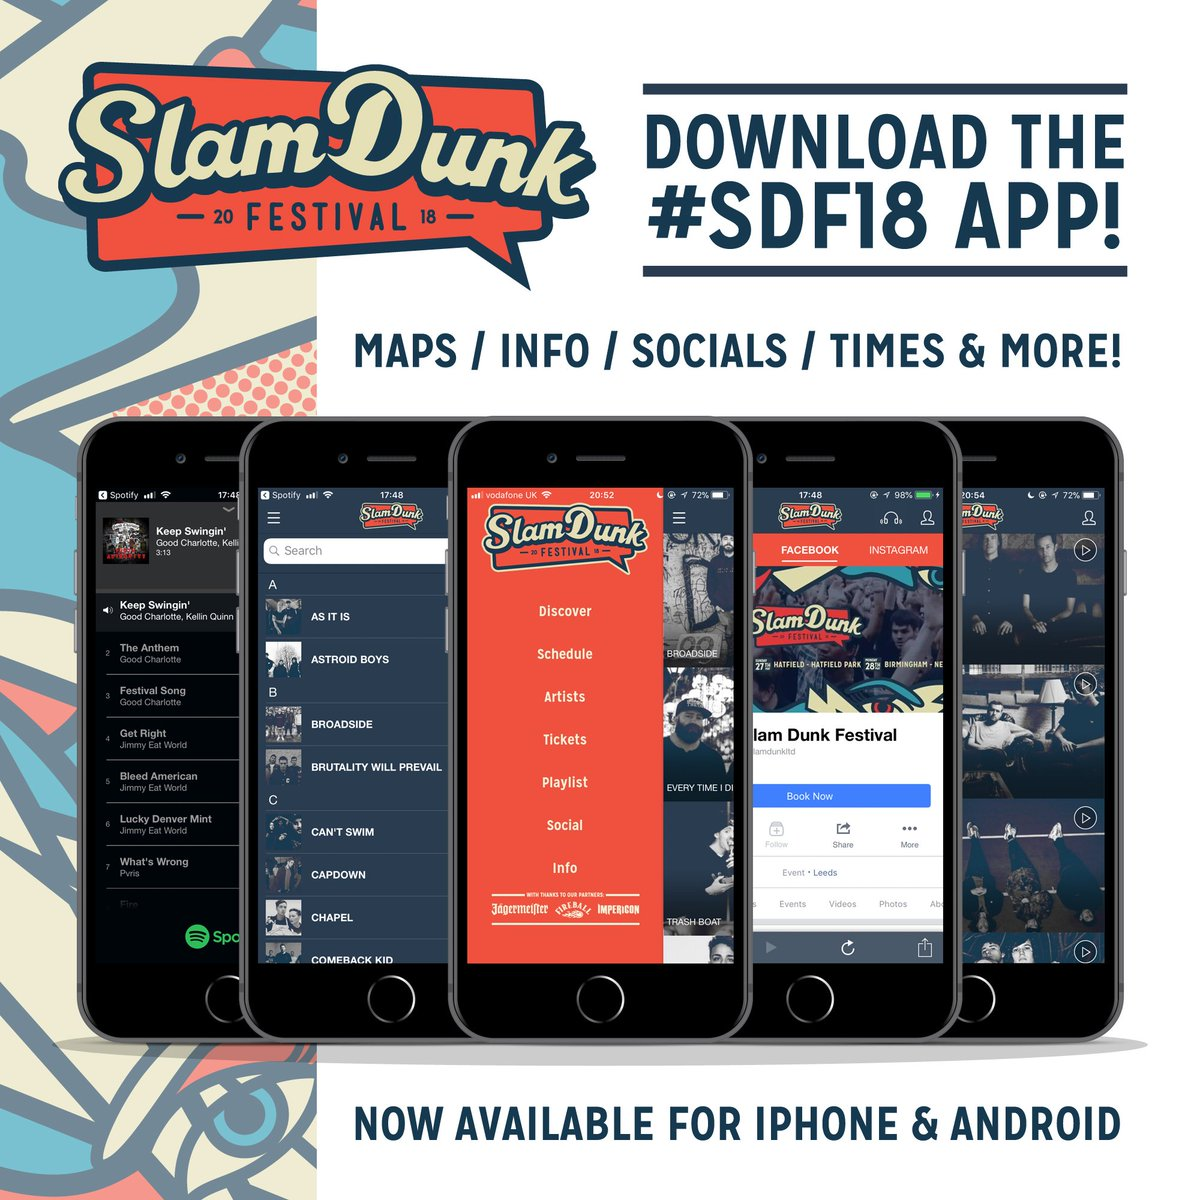 slam dunk on twitter download the sdf18 app make your own